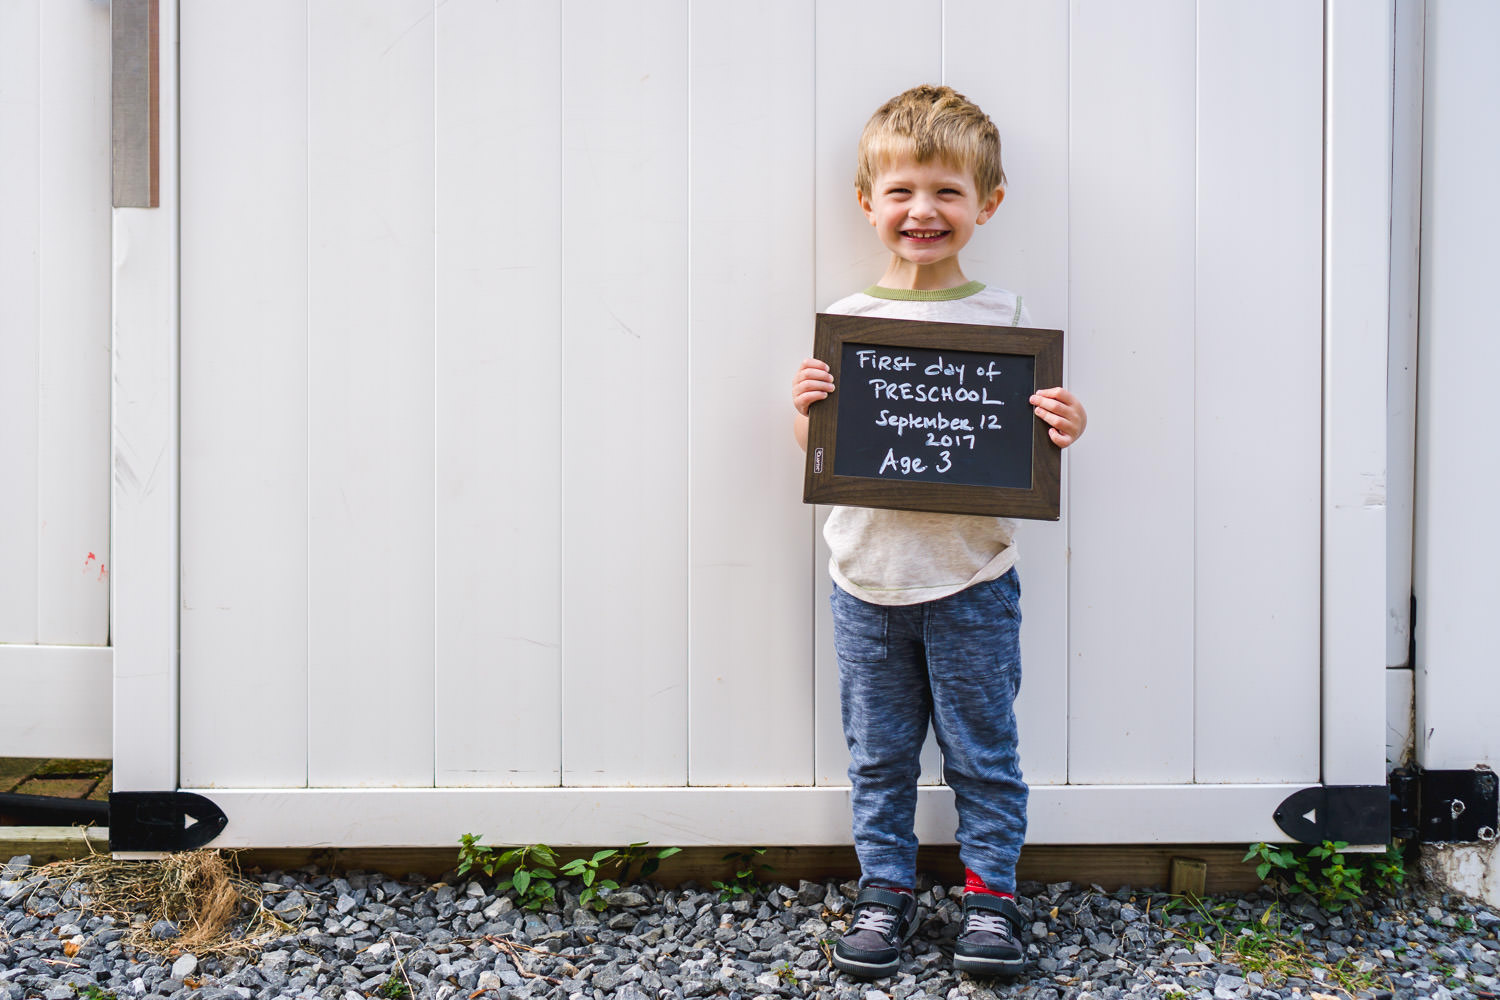 A preschool boy poses for his first day of school.